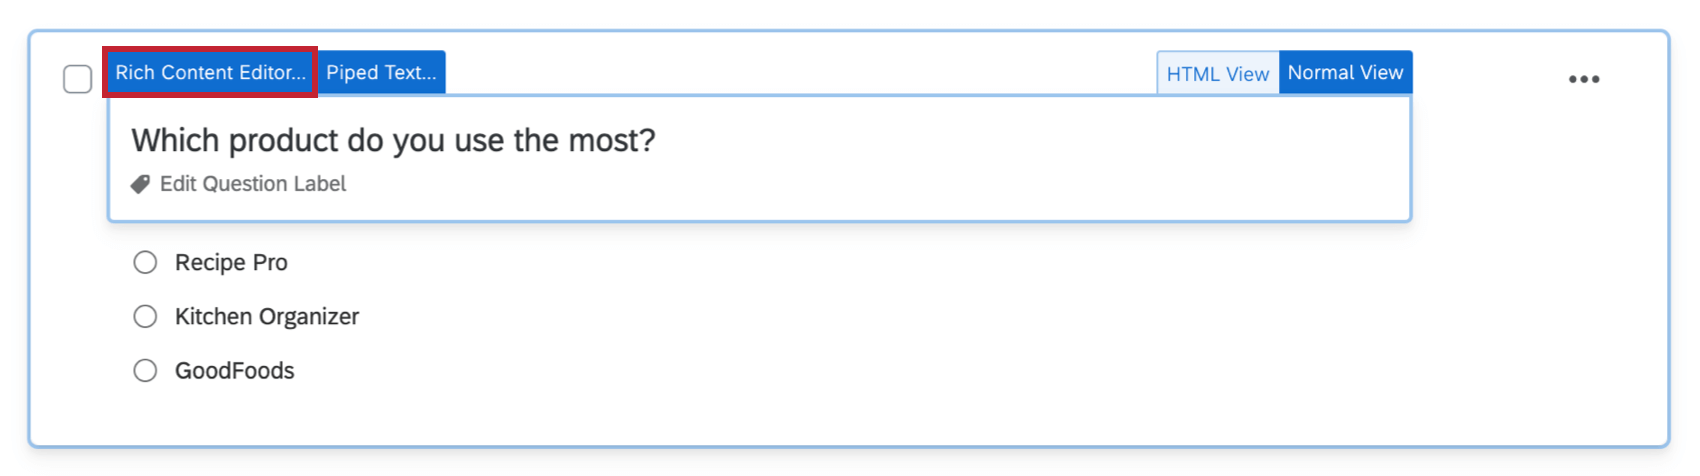 After clicking on the question text, the Rich Content Editor button appears in the upper left